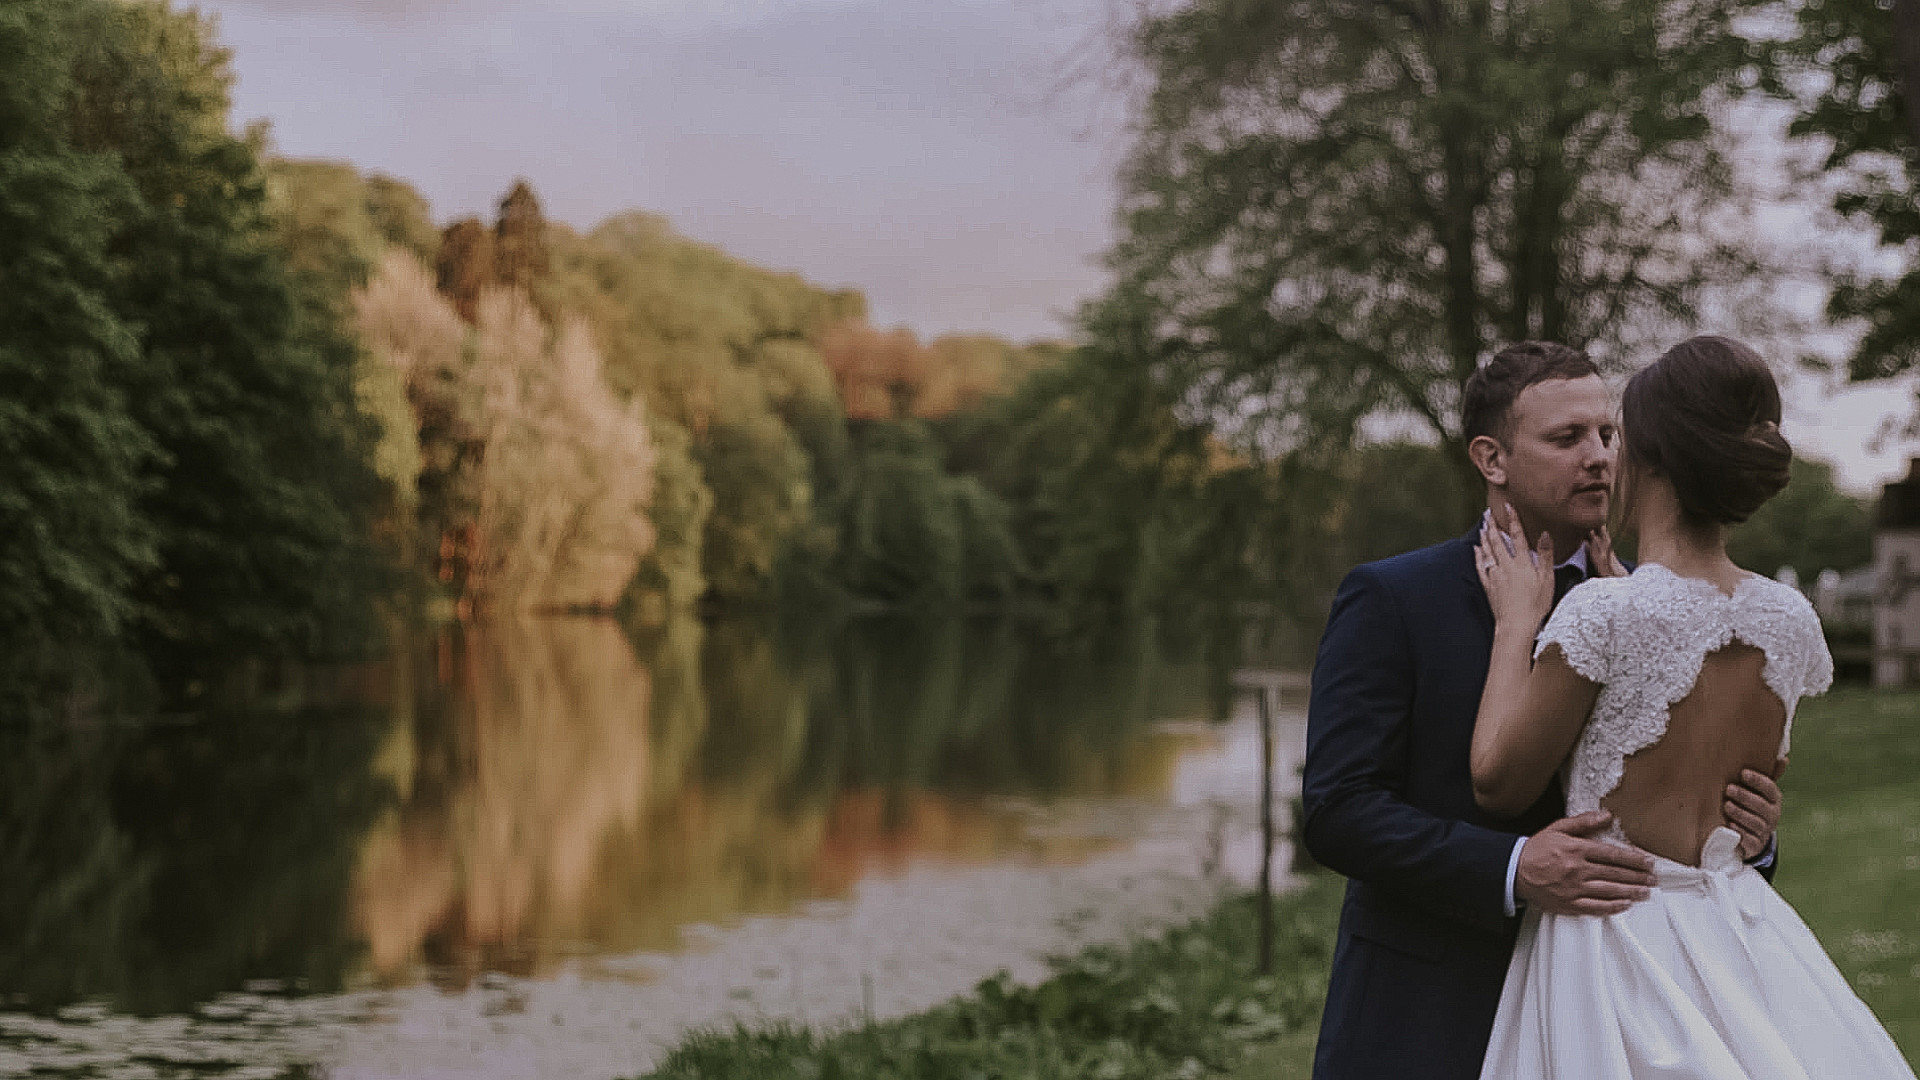 destination wedding films, destination wedding videographer, northeast wedding films, award winning destination wedding filmmaker